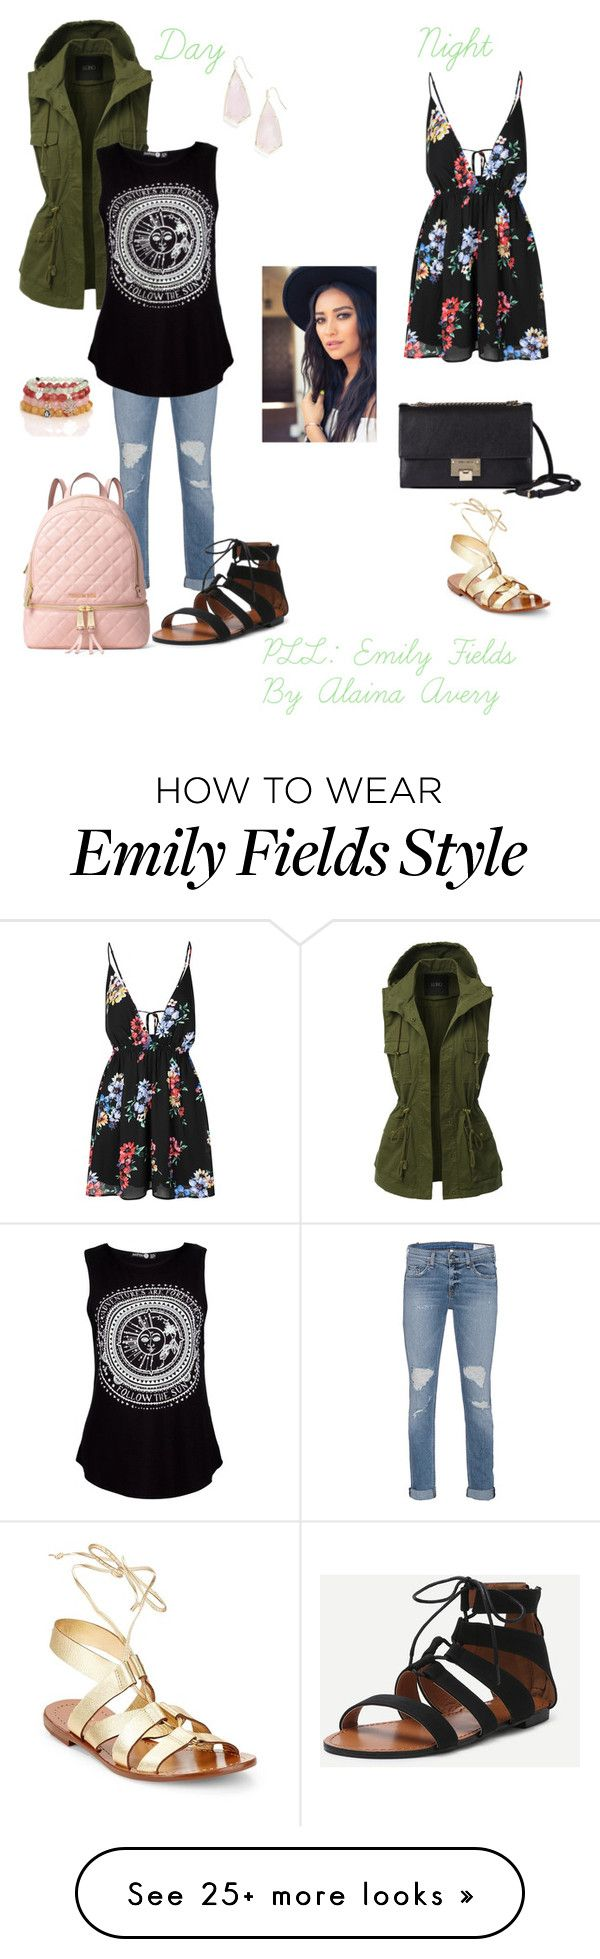 """PLL: Emily Fields"" by alainaavery on Polyvore featuring LE3NO, rag & bone, Blooming Lotus Jewelry, MICHAEL Michael Kors, Kendra Scott, Glamorous, Kate Spade and Jimmy Choo"